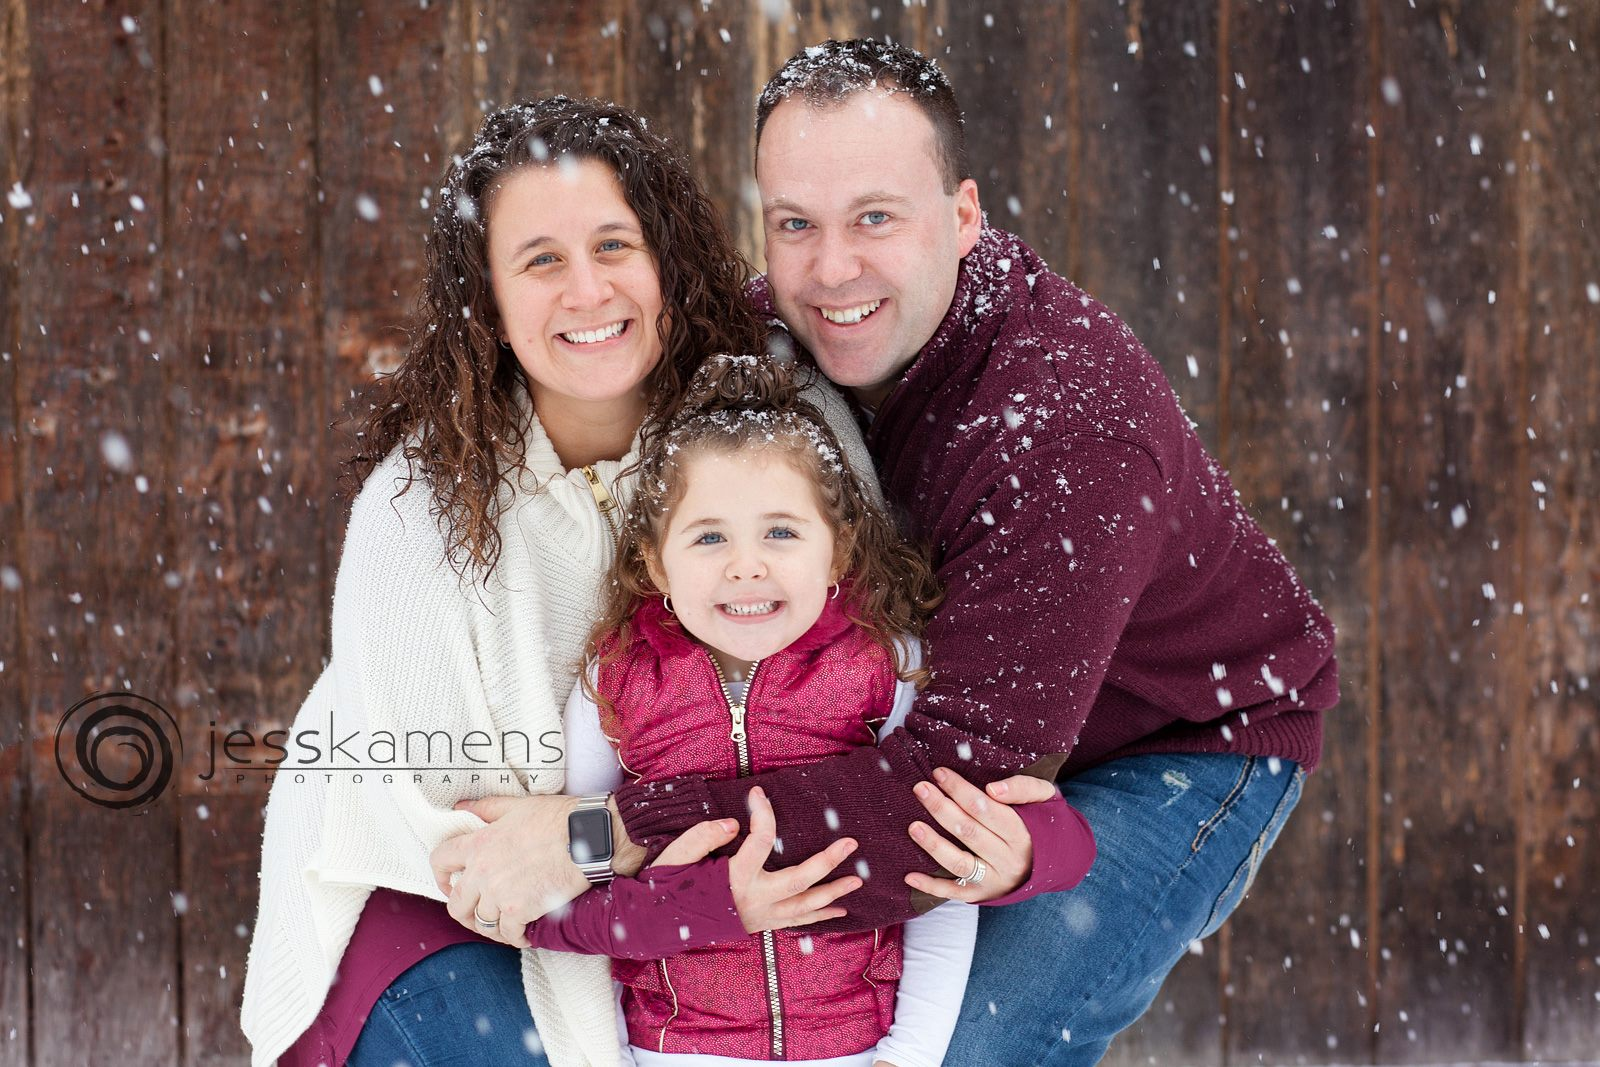 family against a wooden background during their snow session